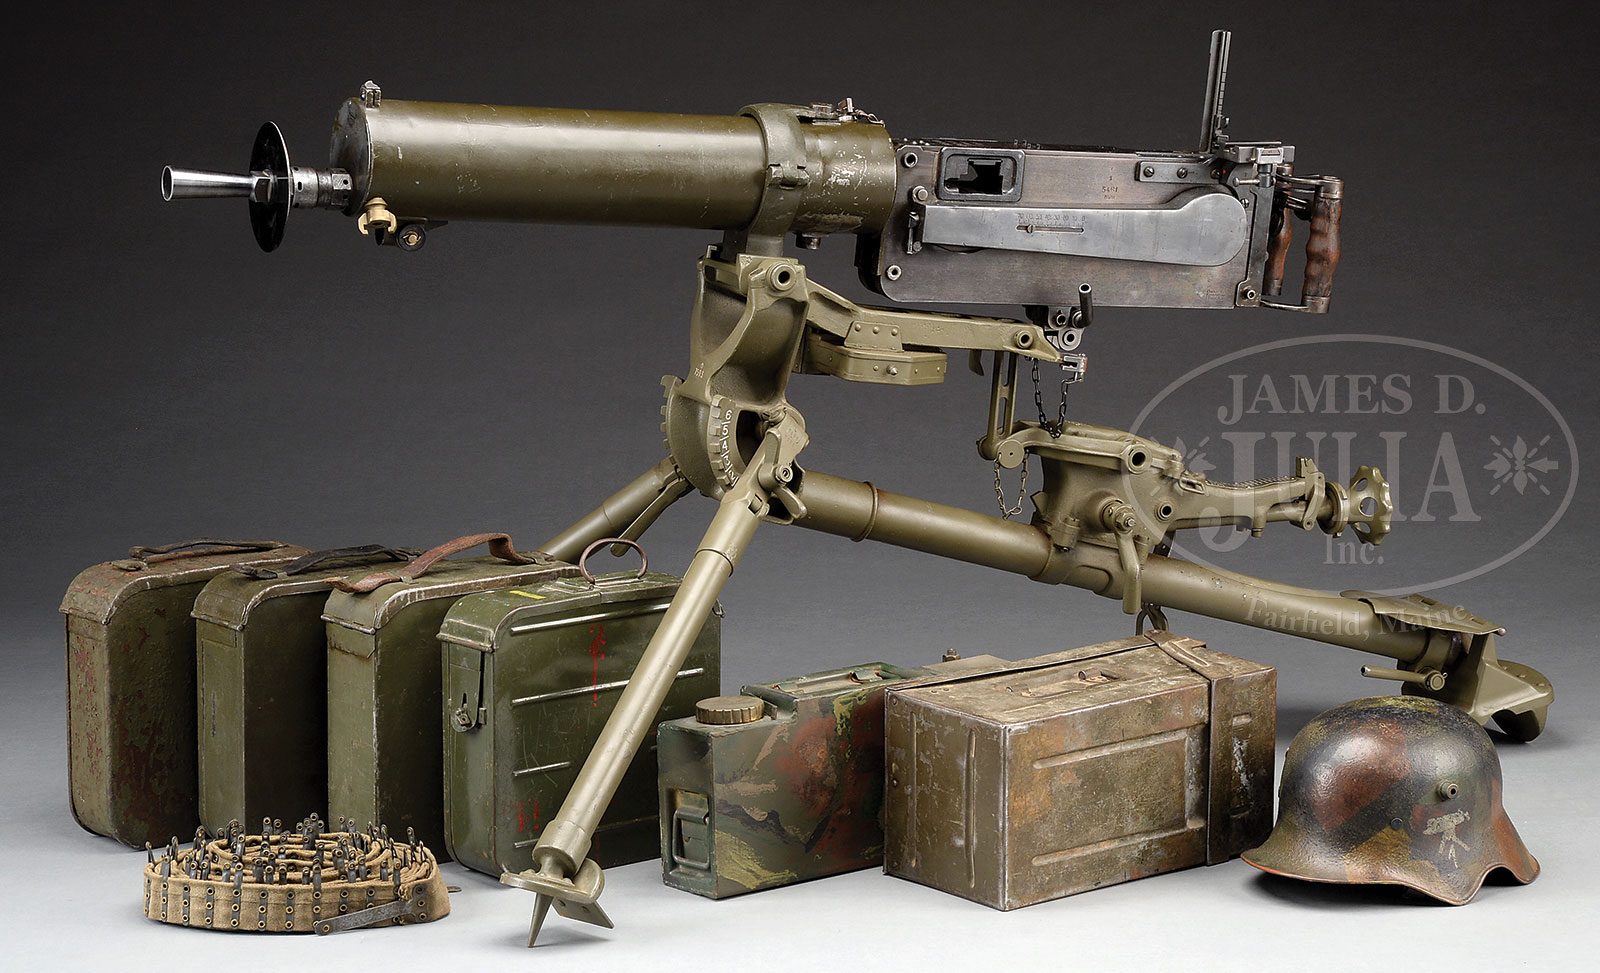 SHOOTER'S DREAM DWM MG-08 MAXIM MACHINE GUN AS REGISTERED BY